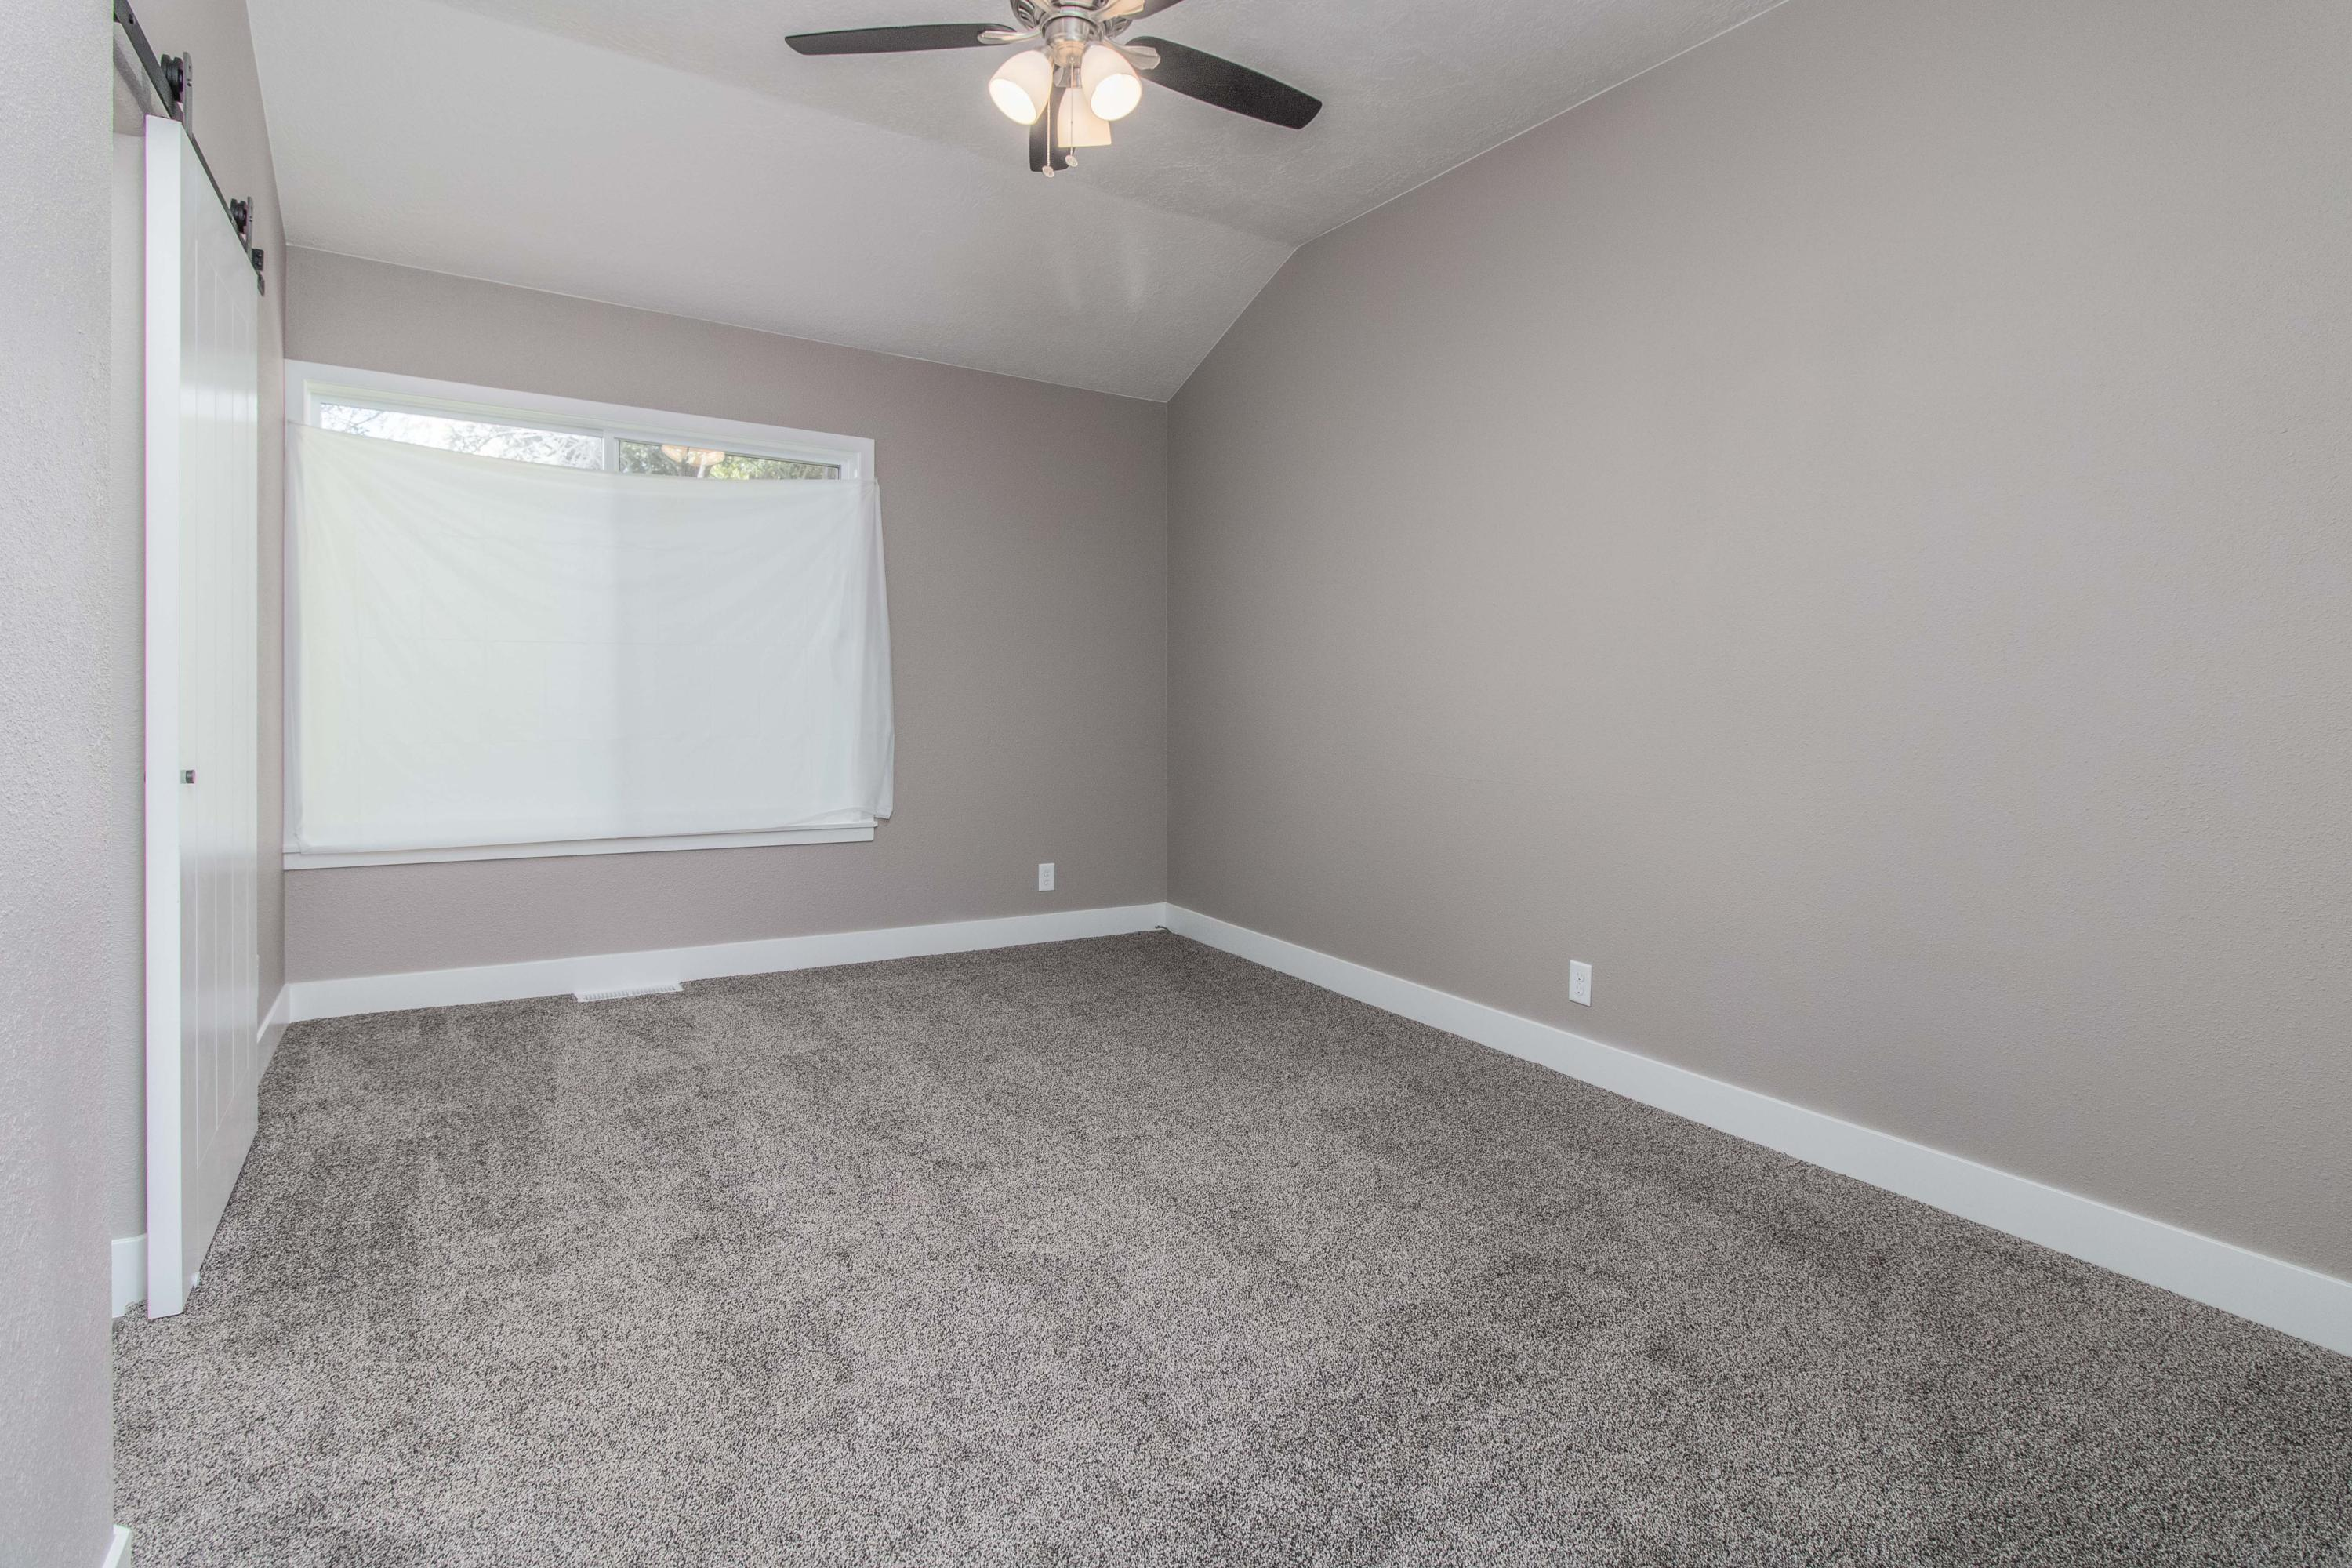 SELLER FINANCING!!! GREAT PRIMARY OR 2ND HOME CLOSE TO ST. GEORGE. Remodeled 4 bed / 3 bath home with two master suites!  RV Parking with clean out. New cabinets, counter tops, windows, doors, central air, carpet & laminate flooring. Updated with LED lighting, fans with timers, & outlets & switches. You\